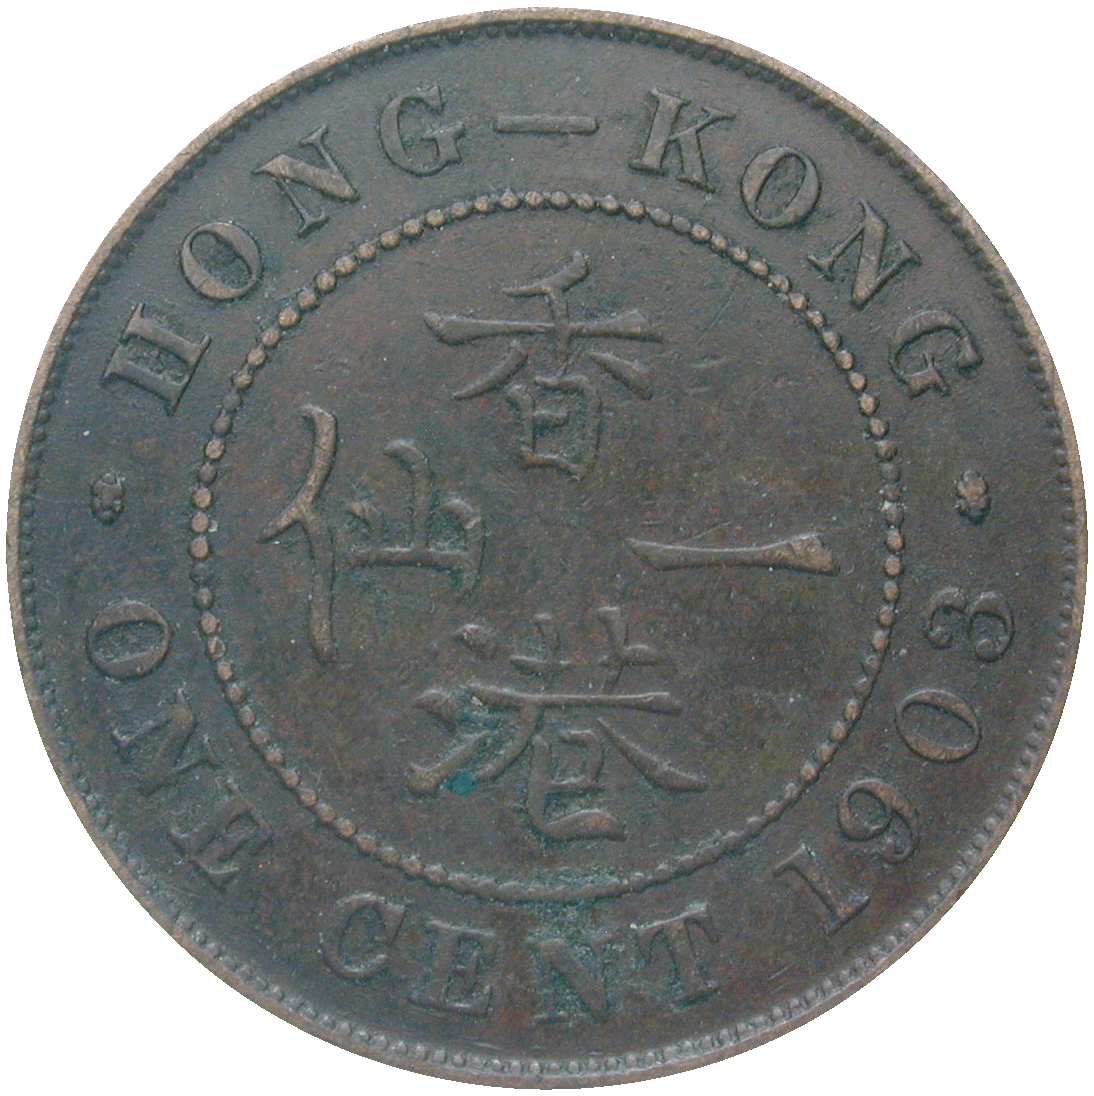 United Kingdom of Great Britain, Edward VII for Hong Kong, 1 Cent 1903 (reverse)